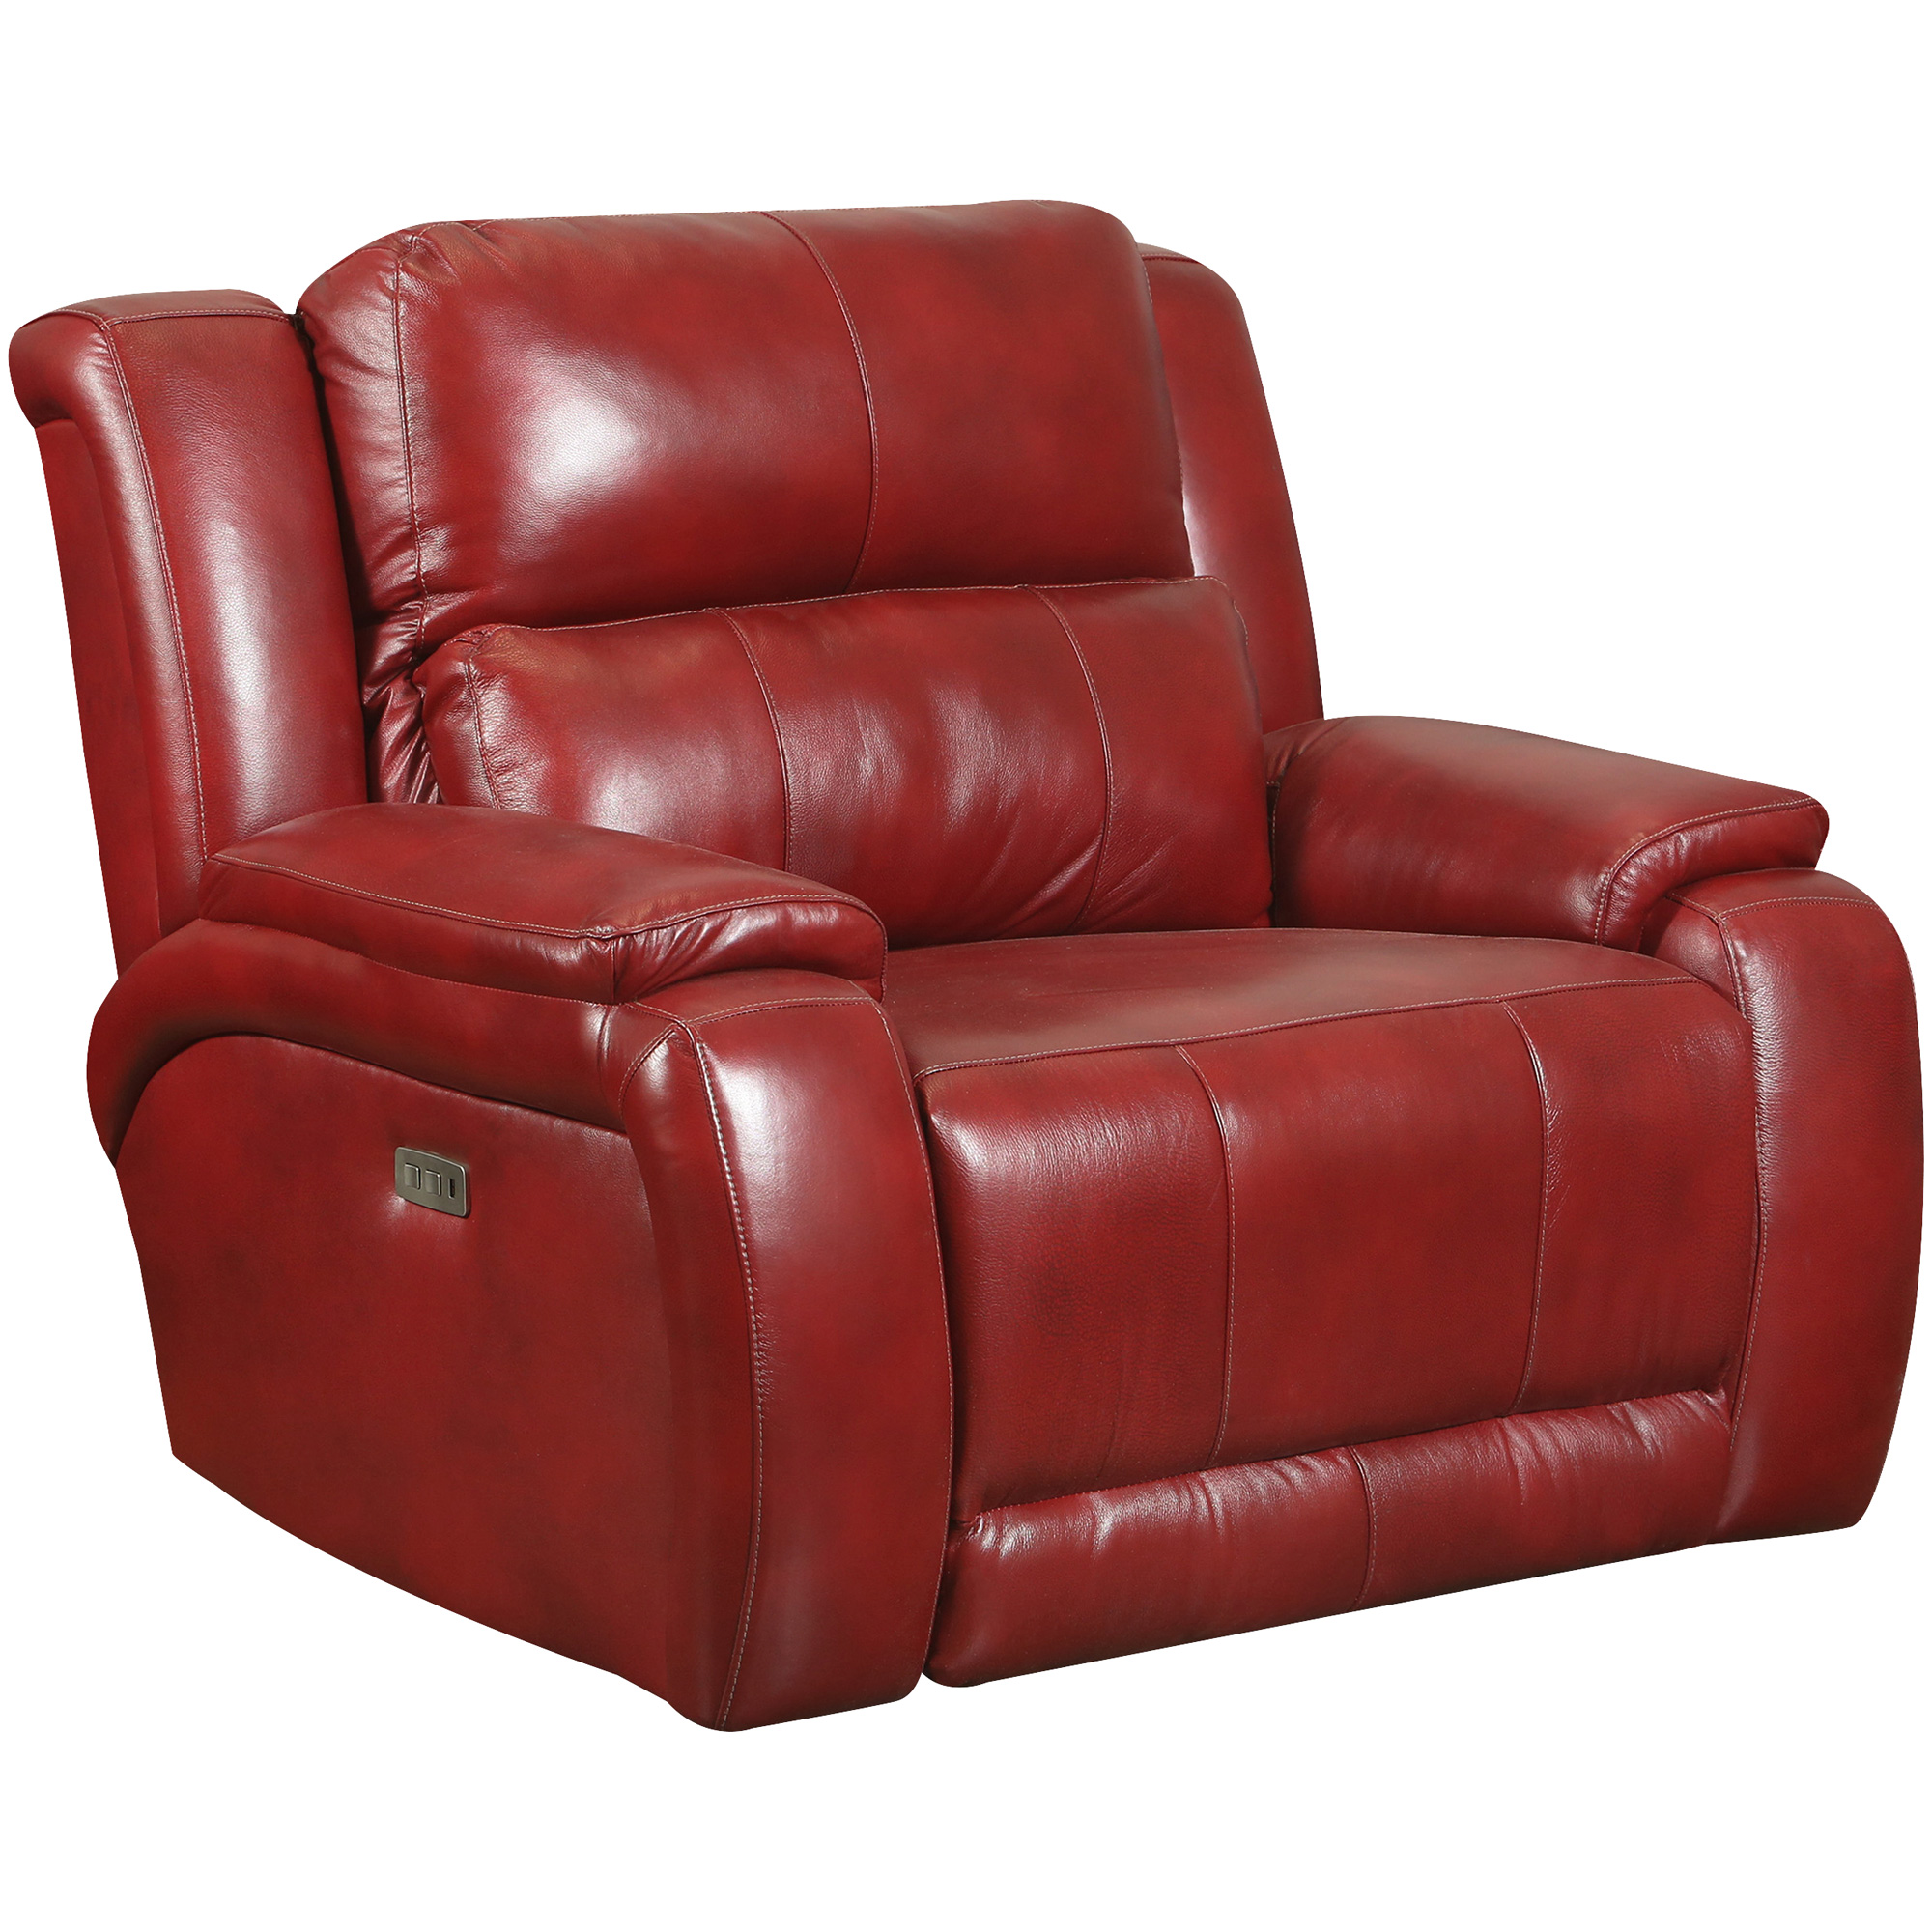 Southern Motion | Marquis Leather Marsala Power+ Next Level Recliner Chair